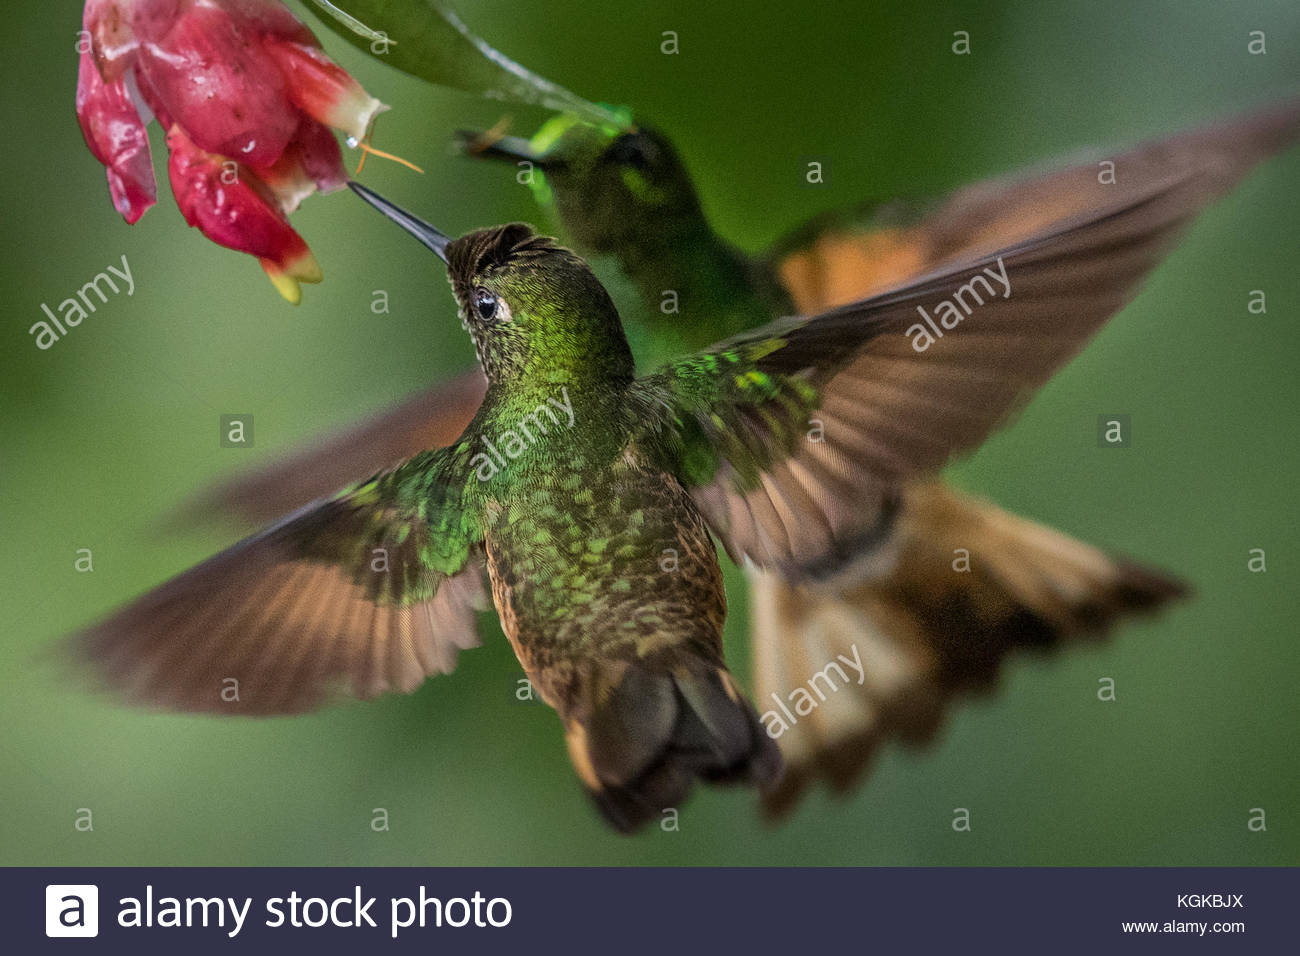 Un buff-tailed hummingbird Boissonneaua flavescens, Coronet, boissons à partir d'une fleur. Photo Stock